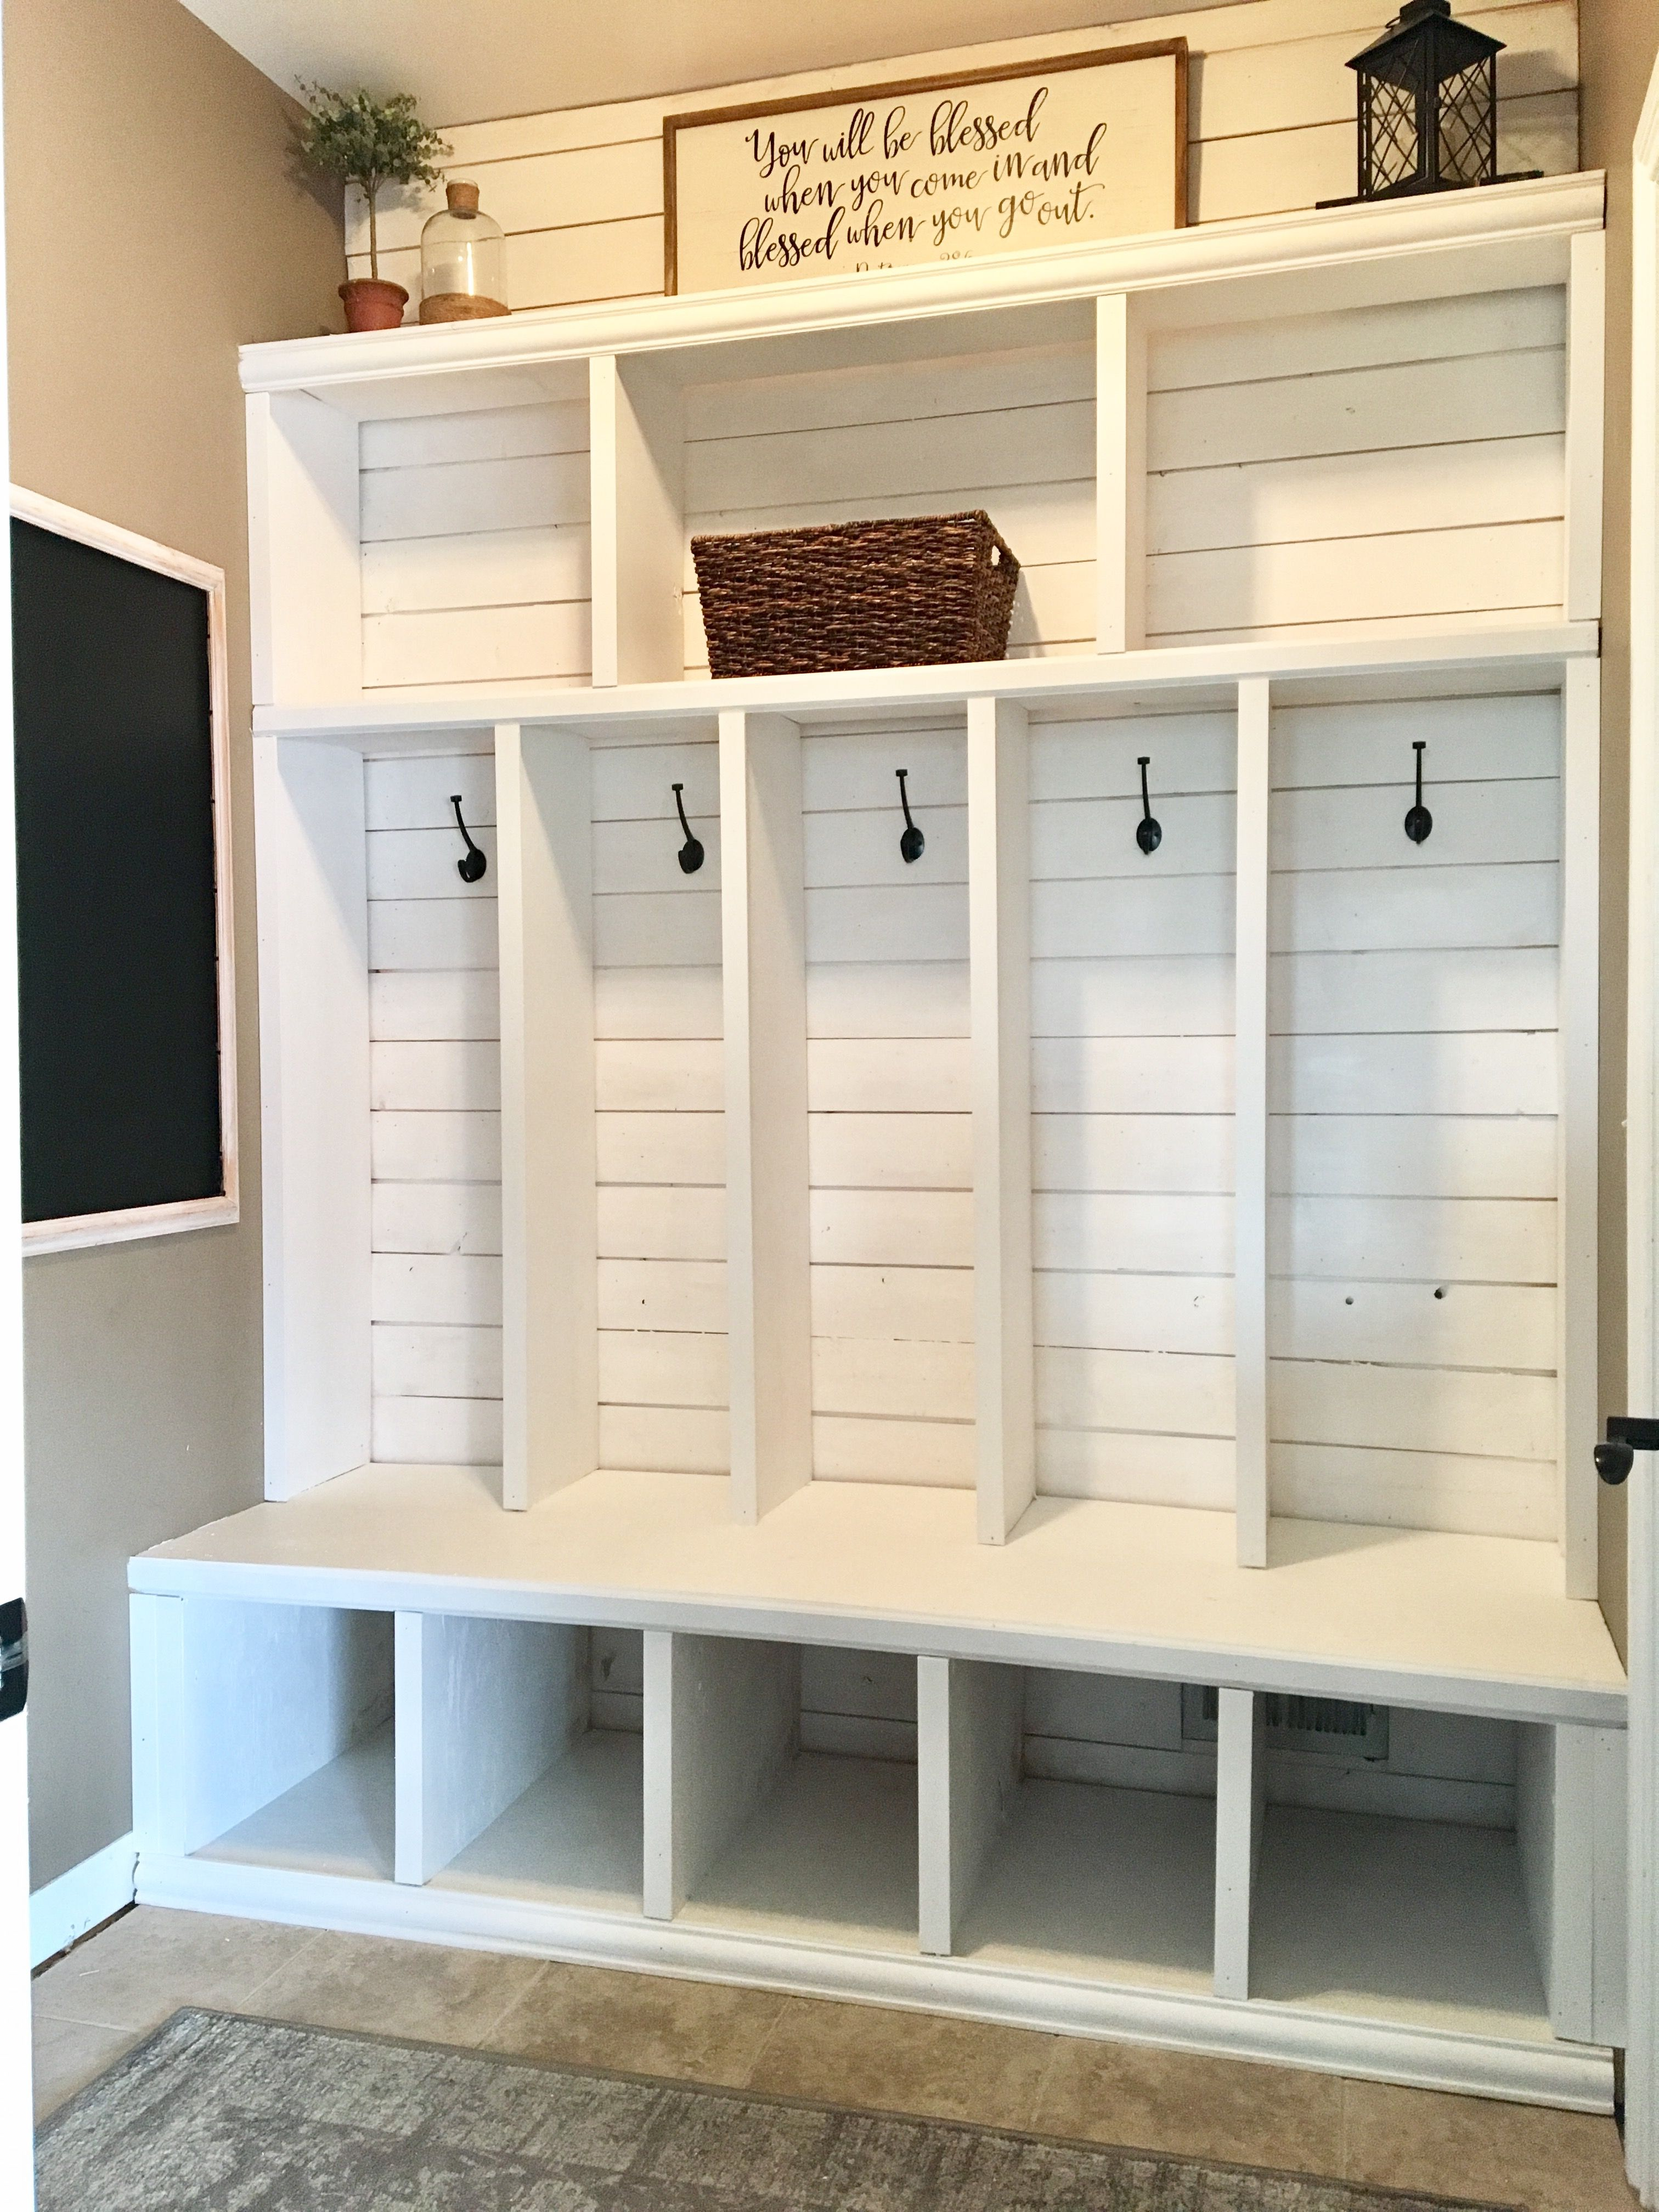 Mudroom Lockers Small Entry Way Home Office Built